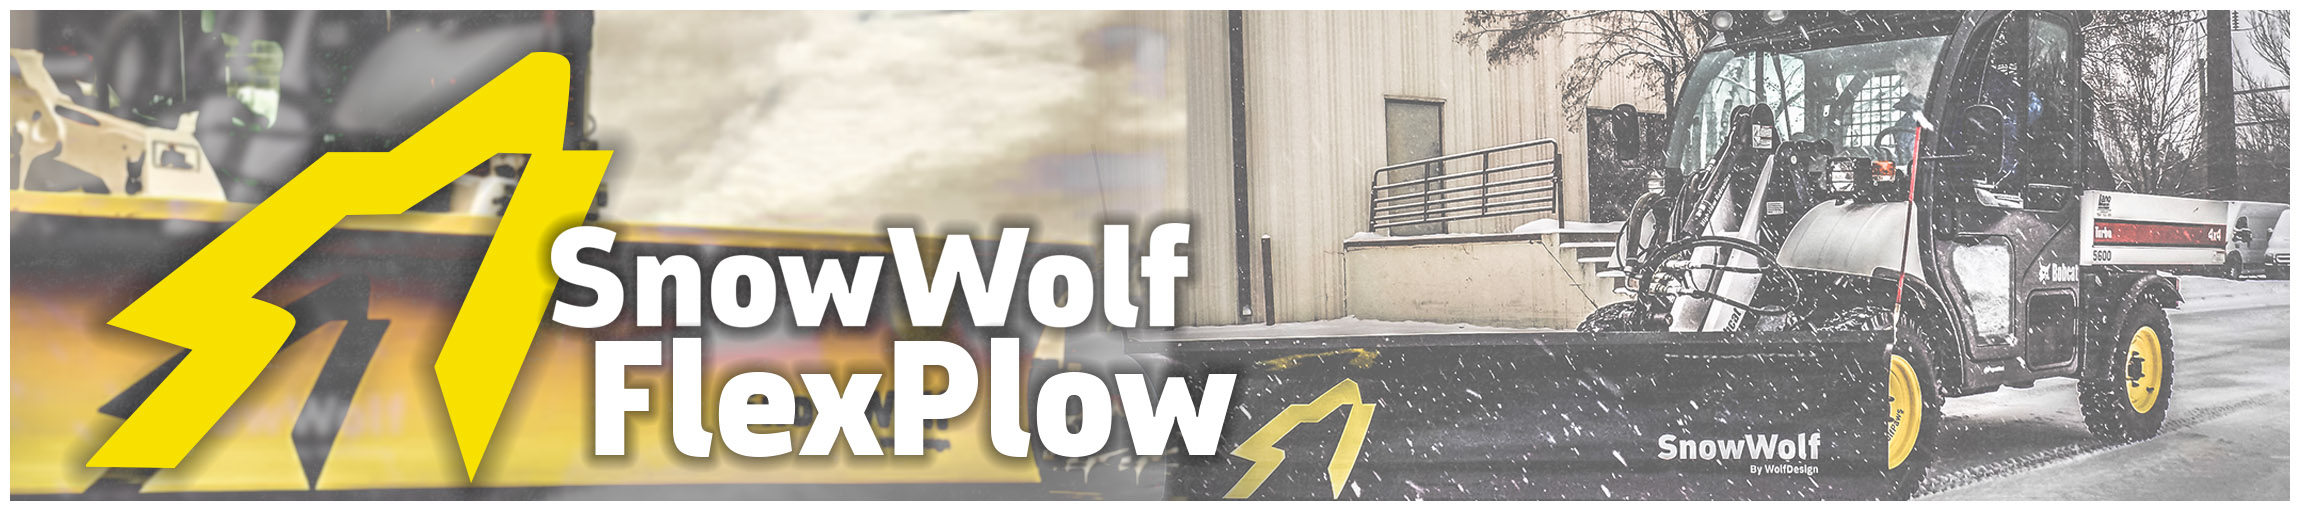 SnowWolf Flex Plow Snow Removal